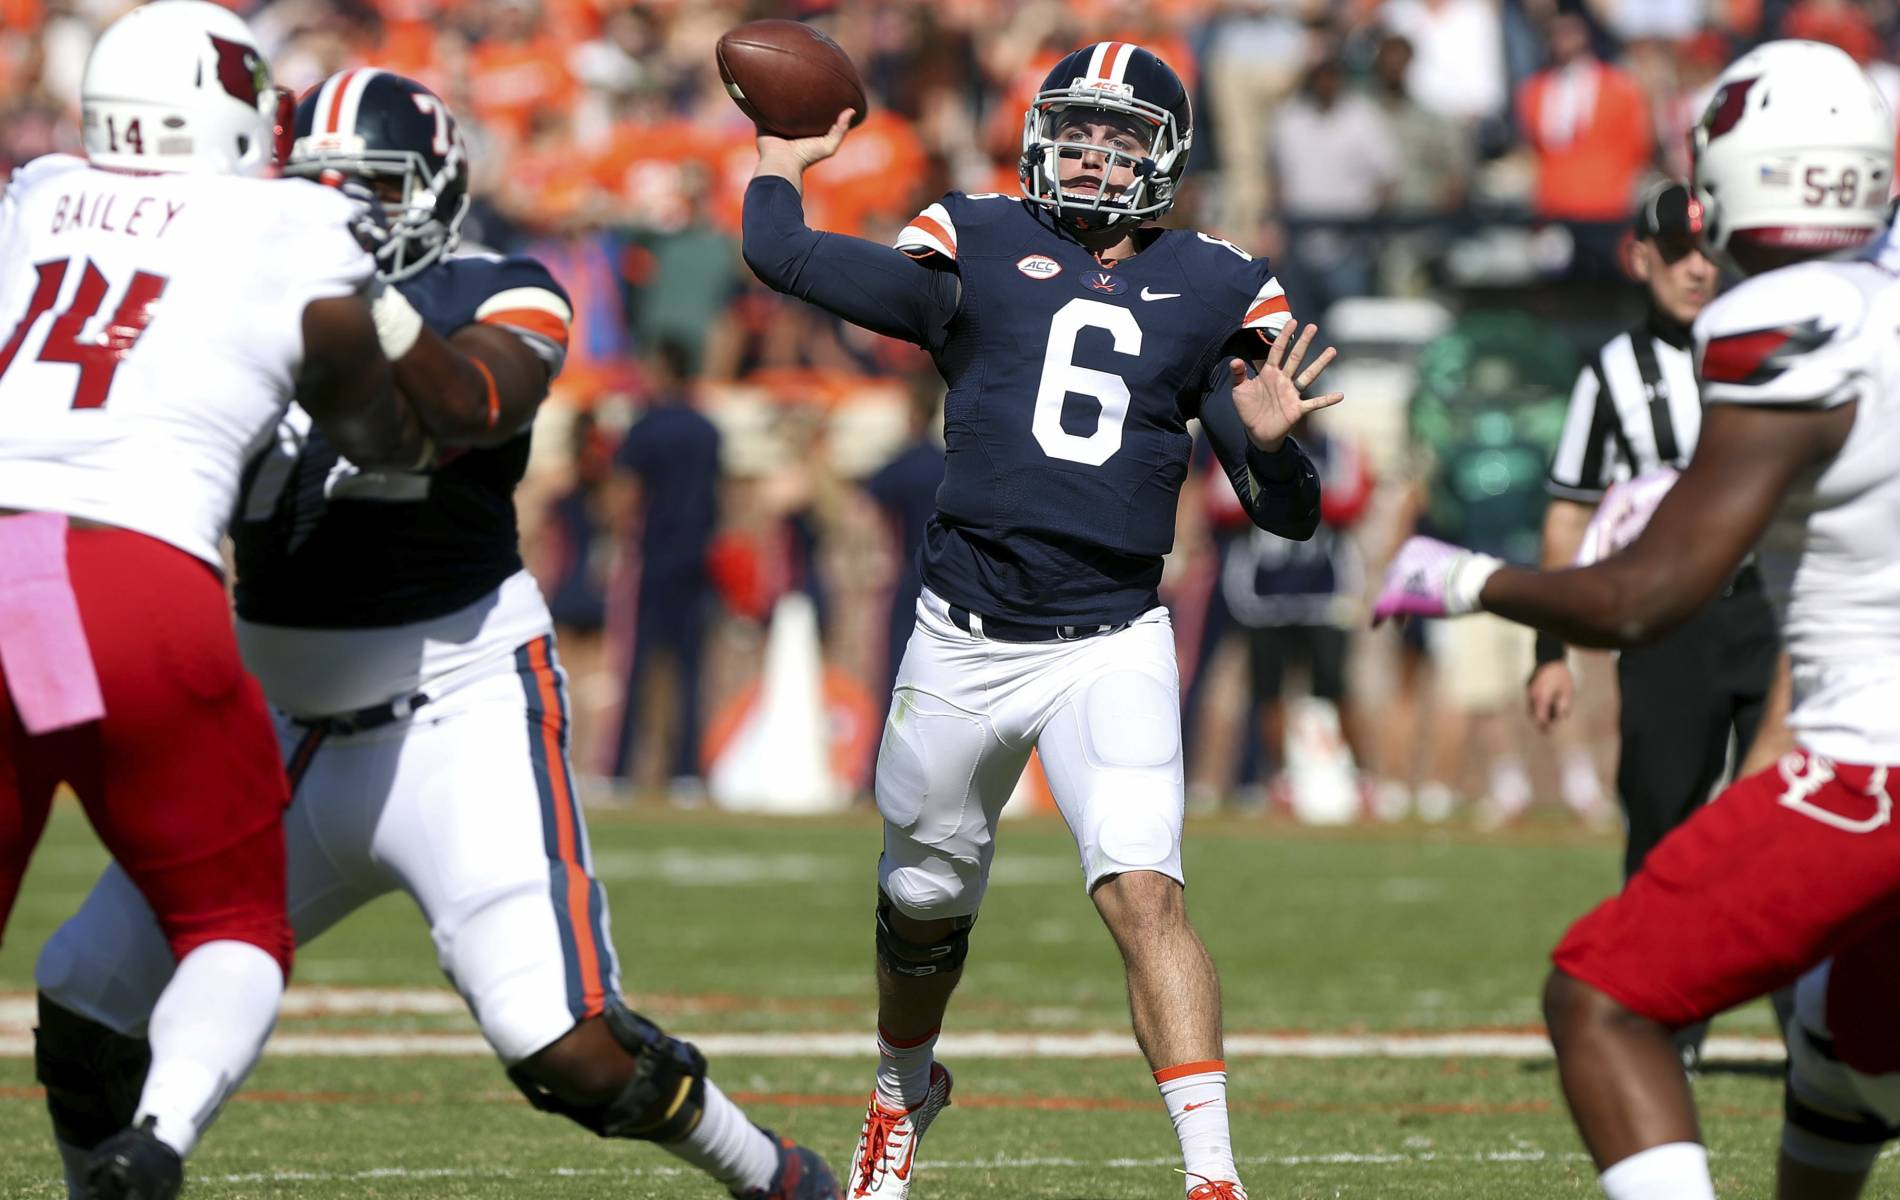 Williams College Football >> ESPN removes broadcaster Robert Lee from UVA football game ...